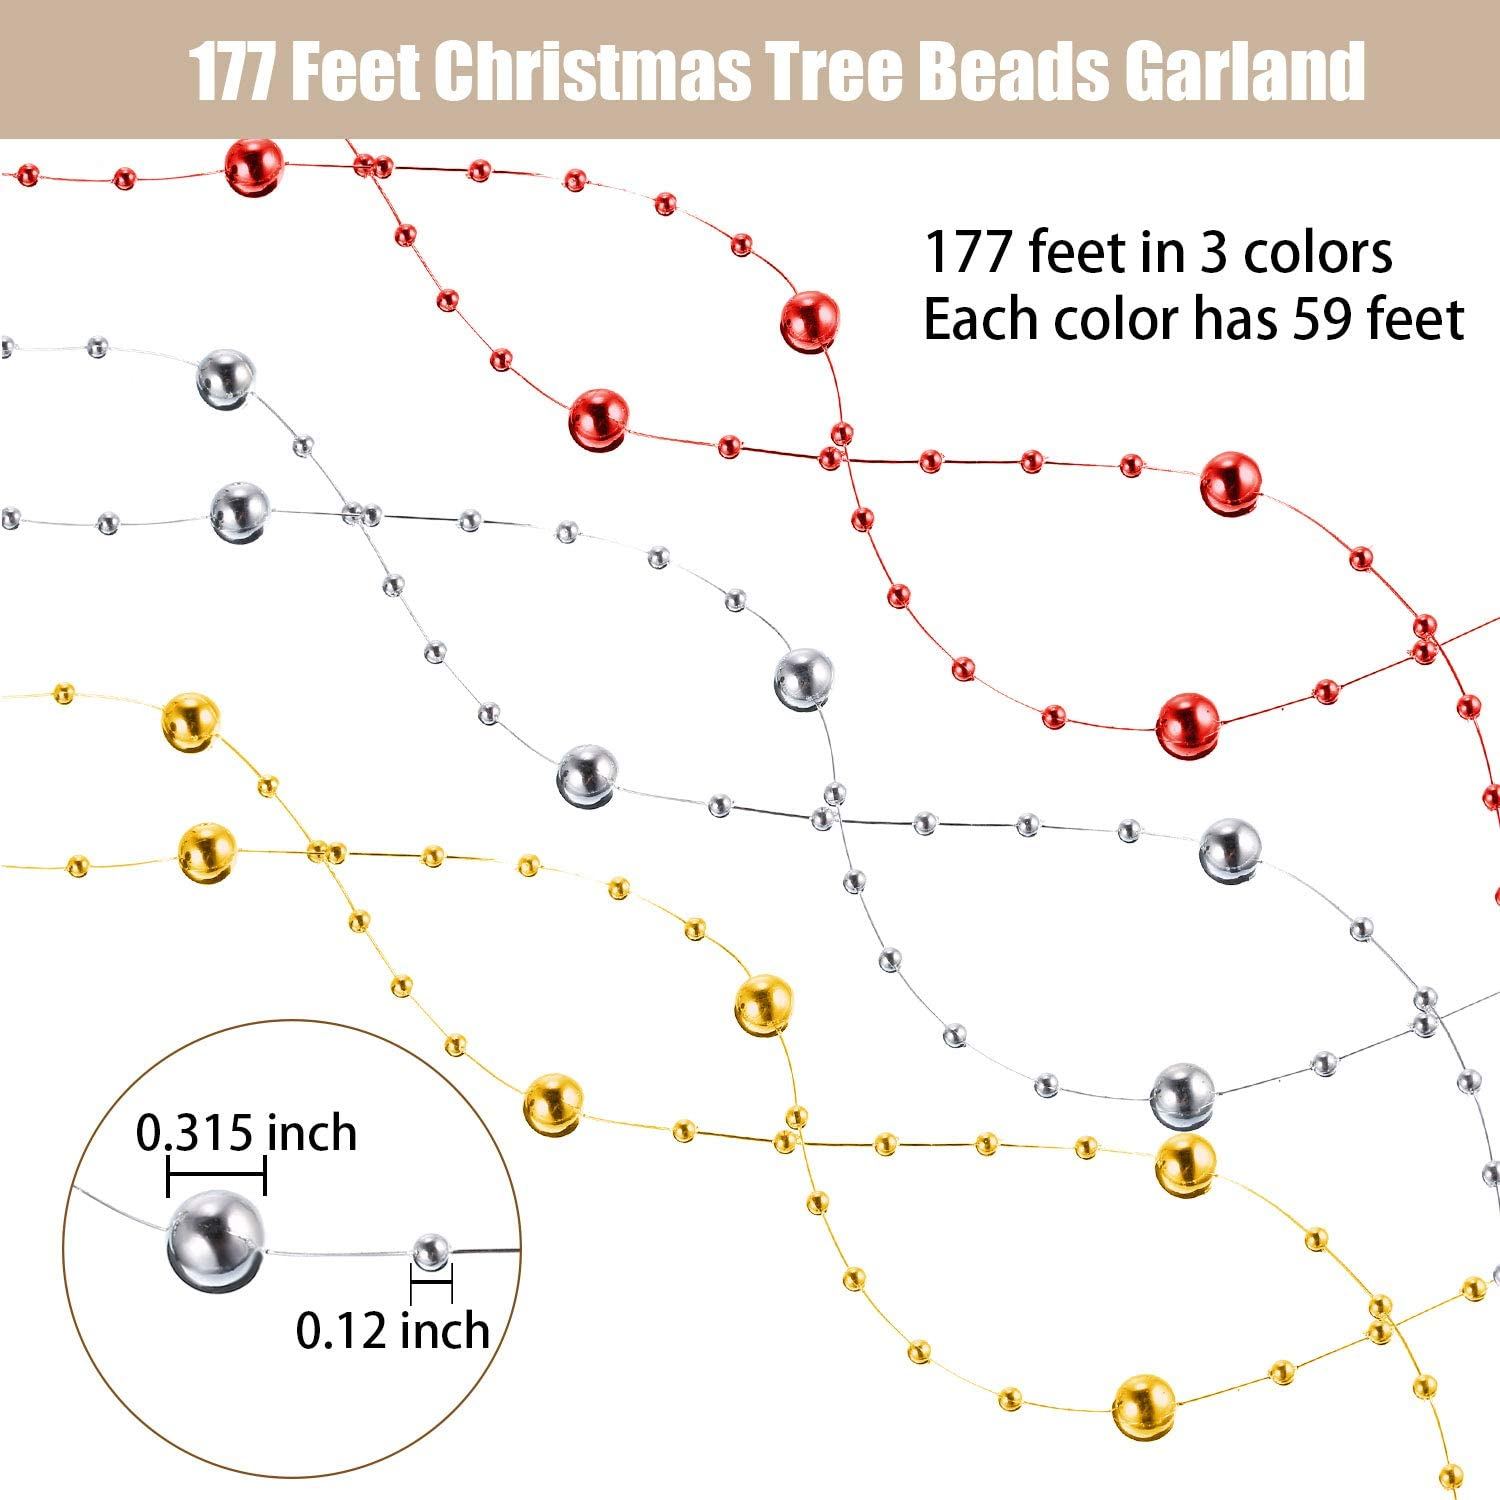 Pangda 177 Feet Christmas Tree Beads Garland Plastic Pearl Strands Chain for Christmas Tree Wreath Gift Wrapping Decoration Pearl, Silver, Gold